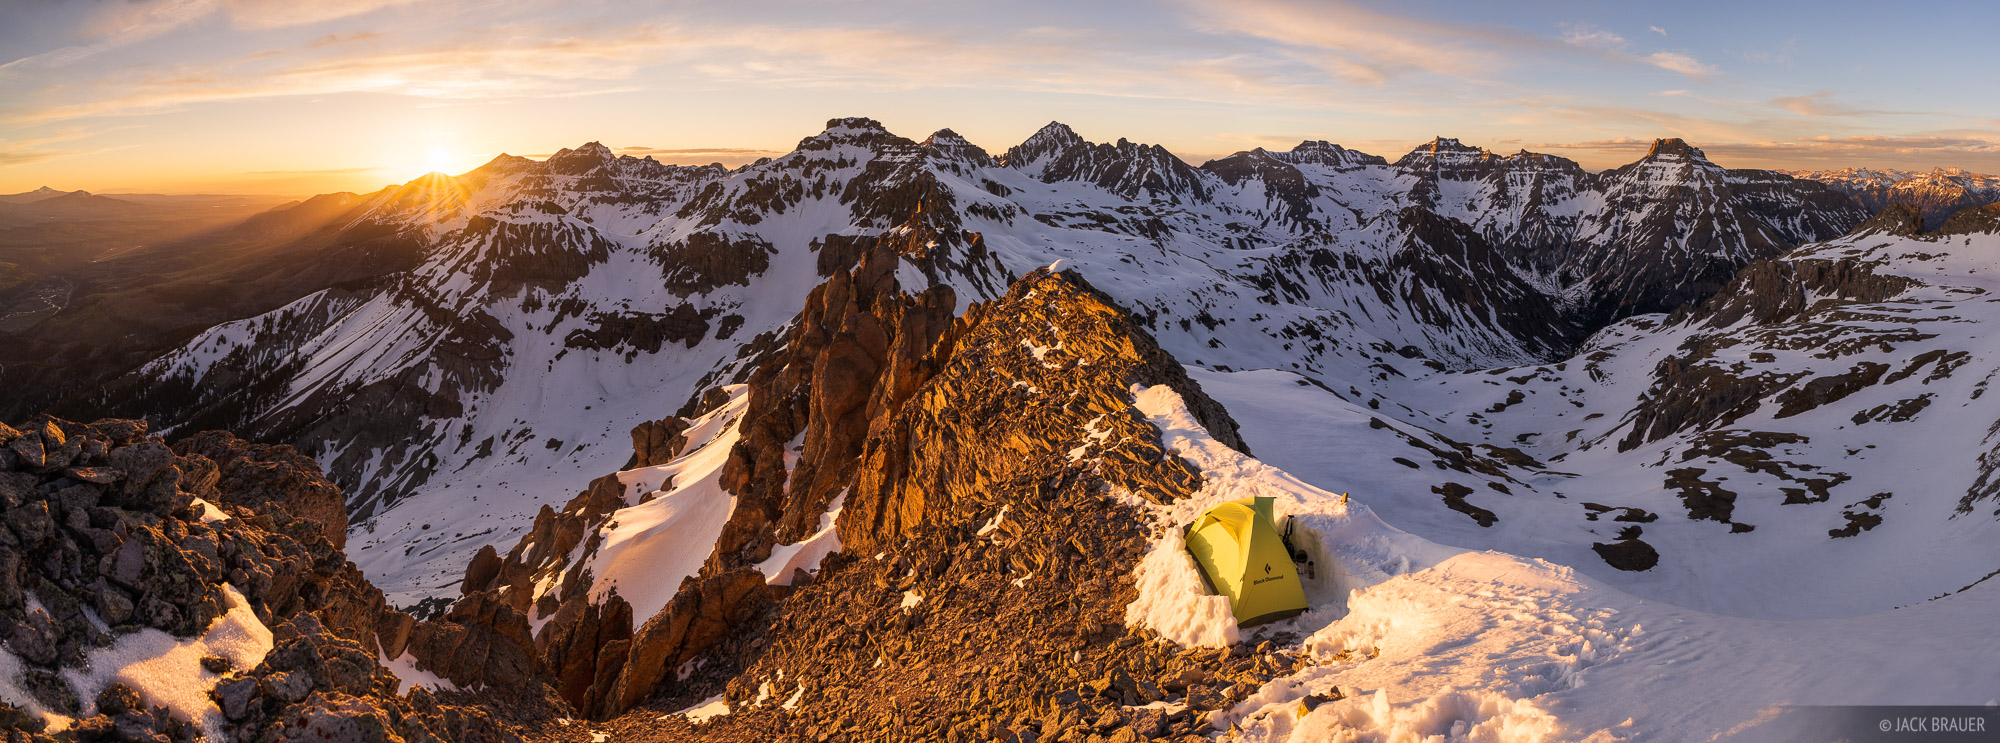 Colorado, San Juan Mountains, Sneffels Range, tent, panorama, Mount Sneffels